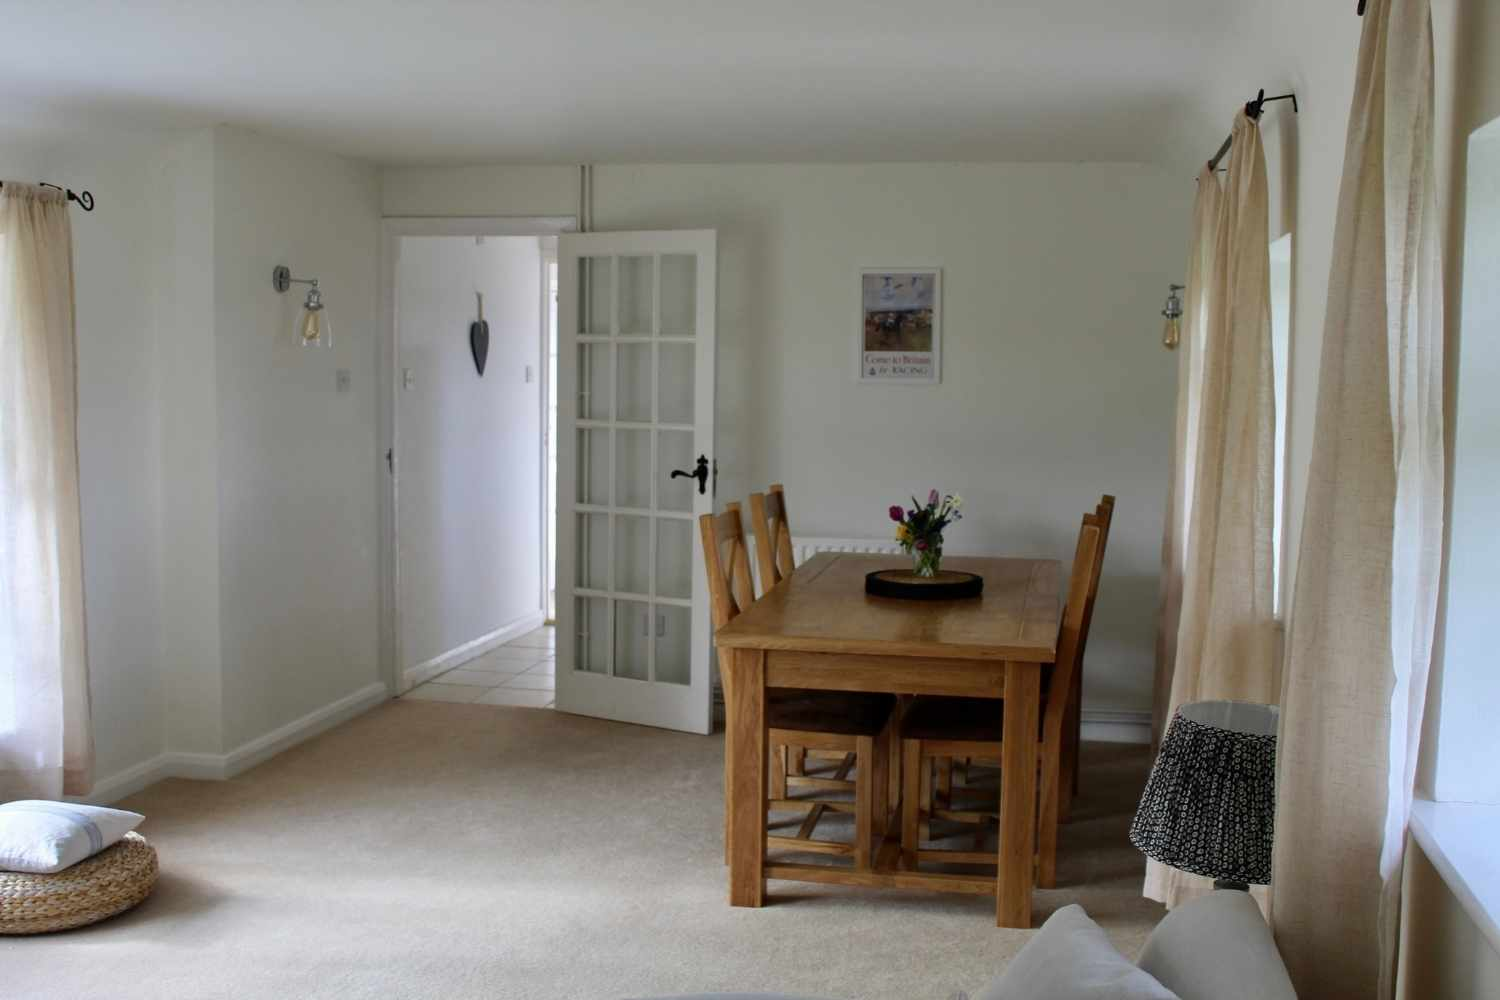 Dining area - space for four